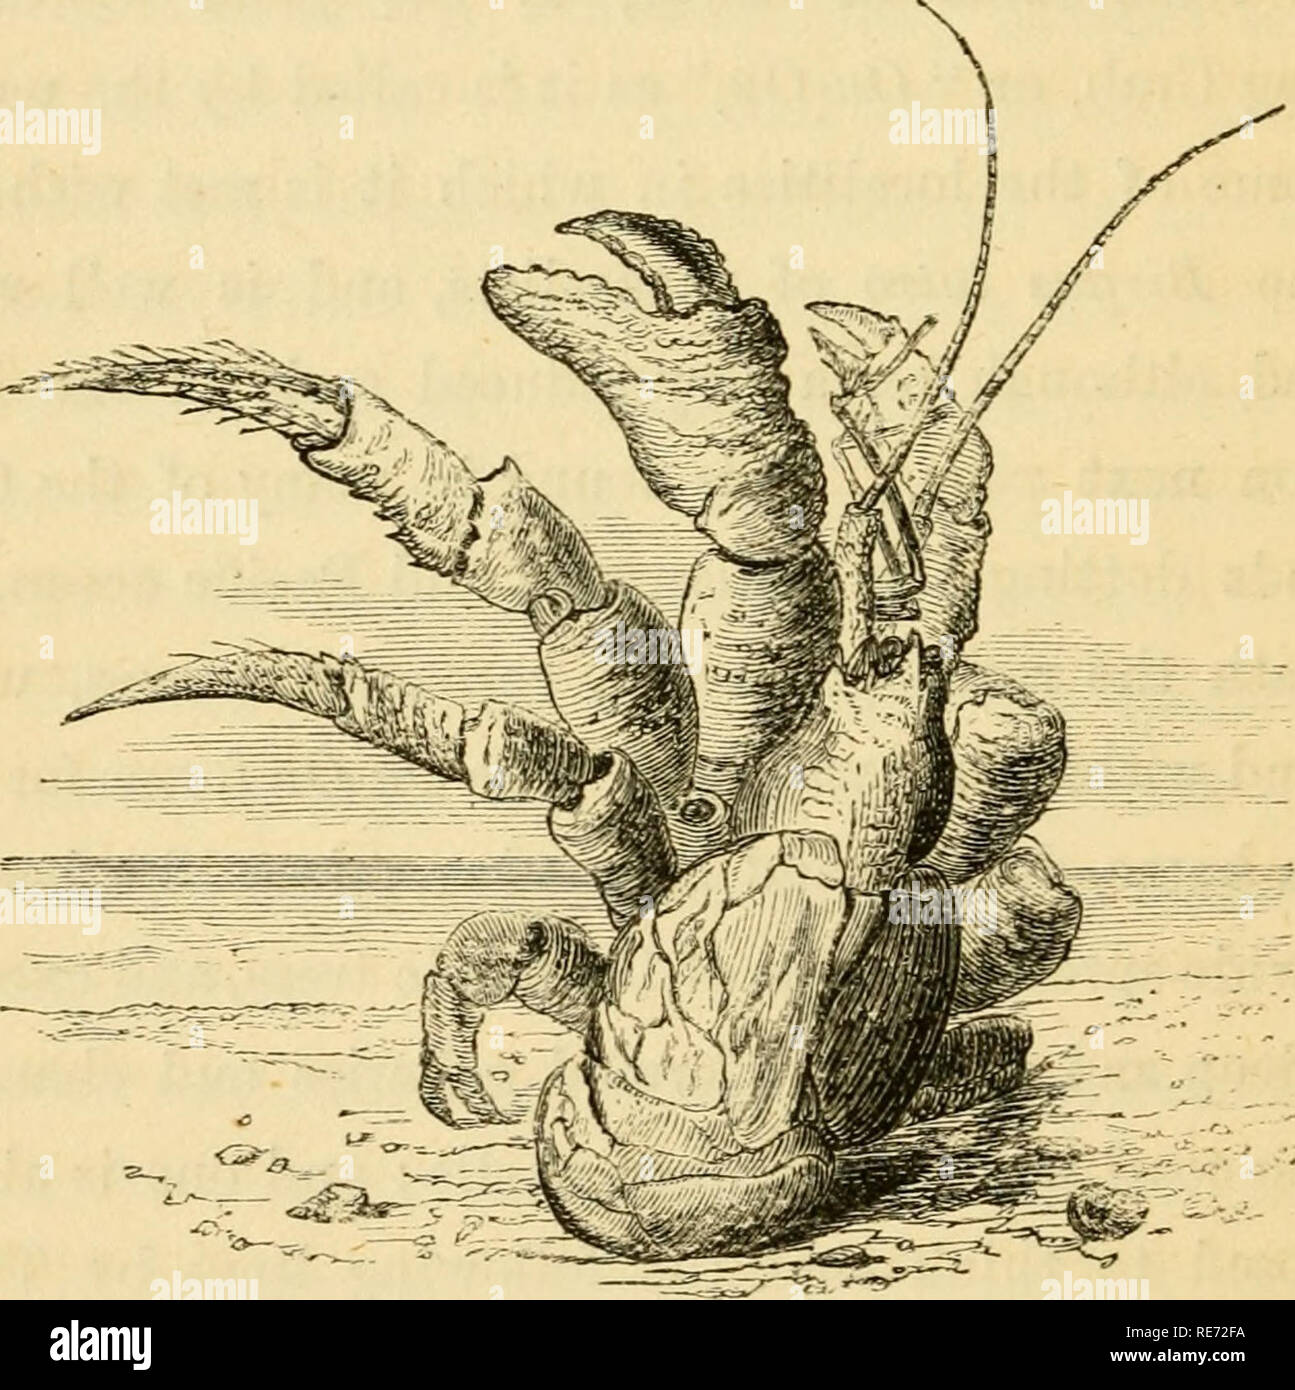 """. Crab, shrimp, and lobster lore, gathered amongst the rocks at the sea-shore, by the riverside, and in the forest. Shrimps; Crabs; Lobsters. 46 CRAB, SHRIMP, AND LOBSTER LORE. And from the palm to drain its fresh'ning wine, More bounteous far than all the frantic juice """"Which Bacchus pours."""" Here, like a feudal baron of old, he forms for himself a stronghold, sallying forth like a freebooter, to feast on the spoils of the grove. Curious stories are related of these marauders, and it has been gravely asserted that. they have been known to ascend the tall stalks of the cocoa palms for Stock Photo"""